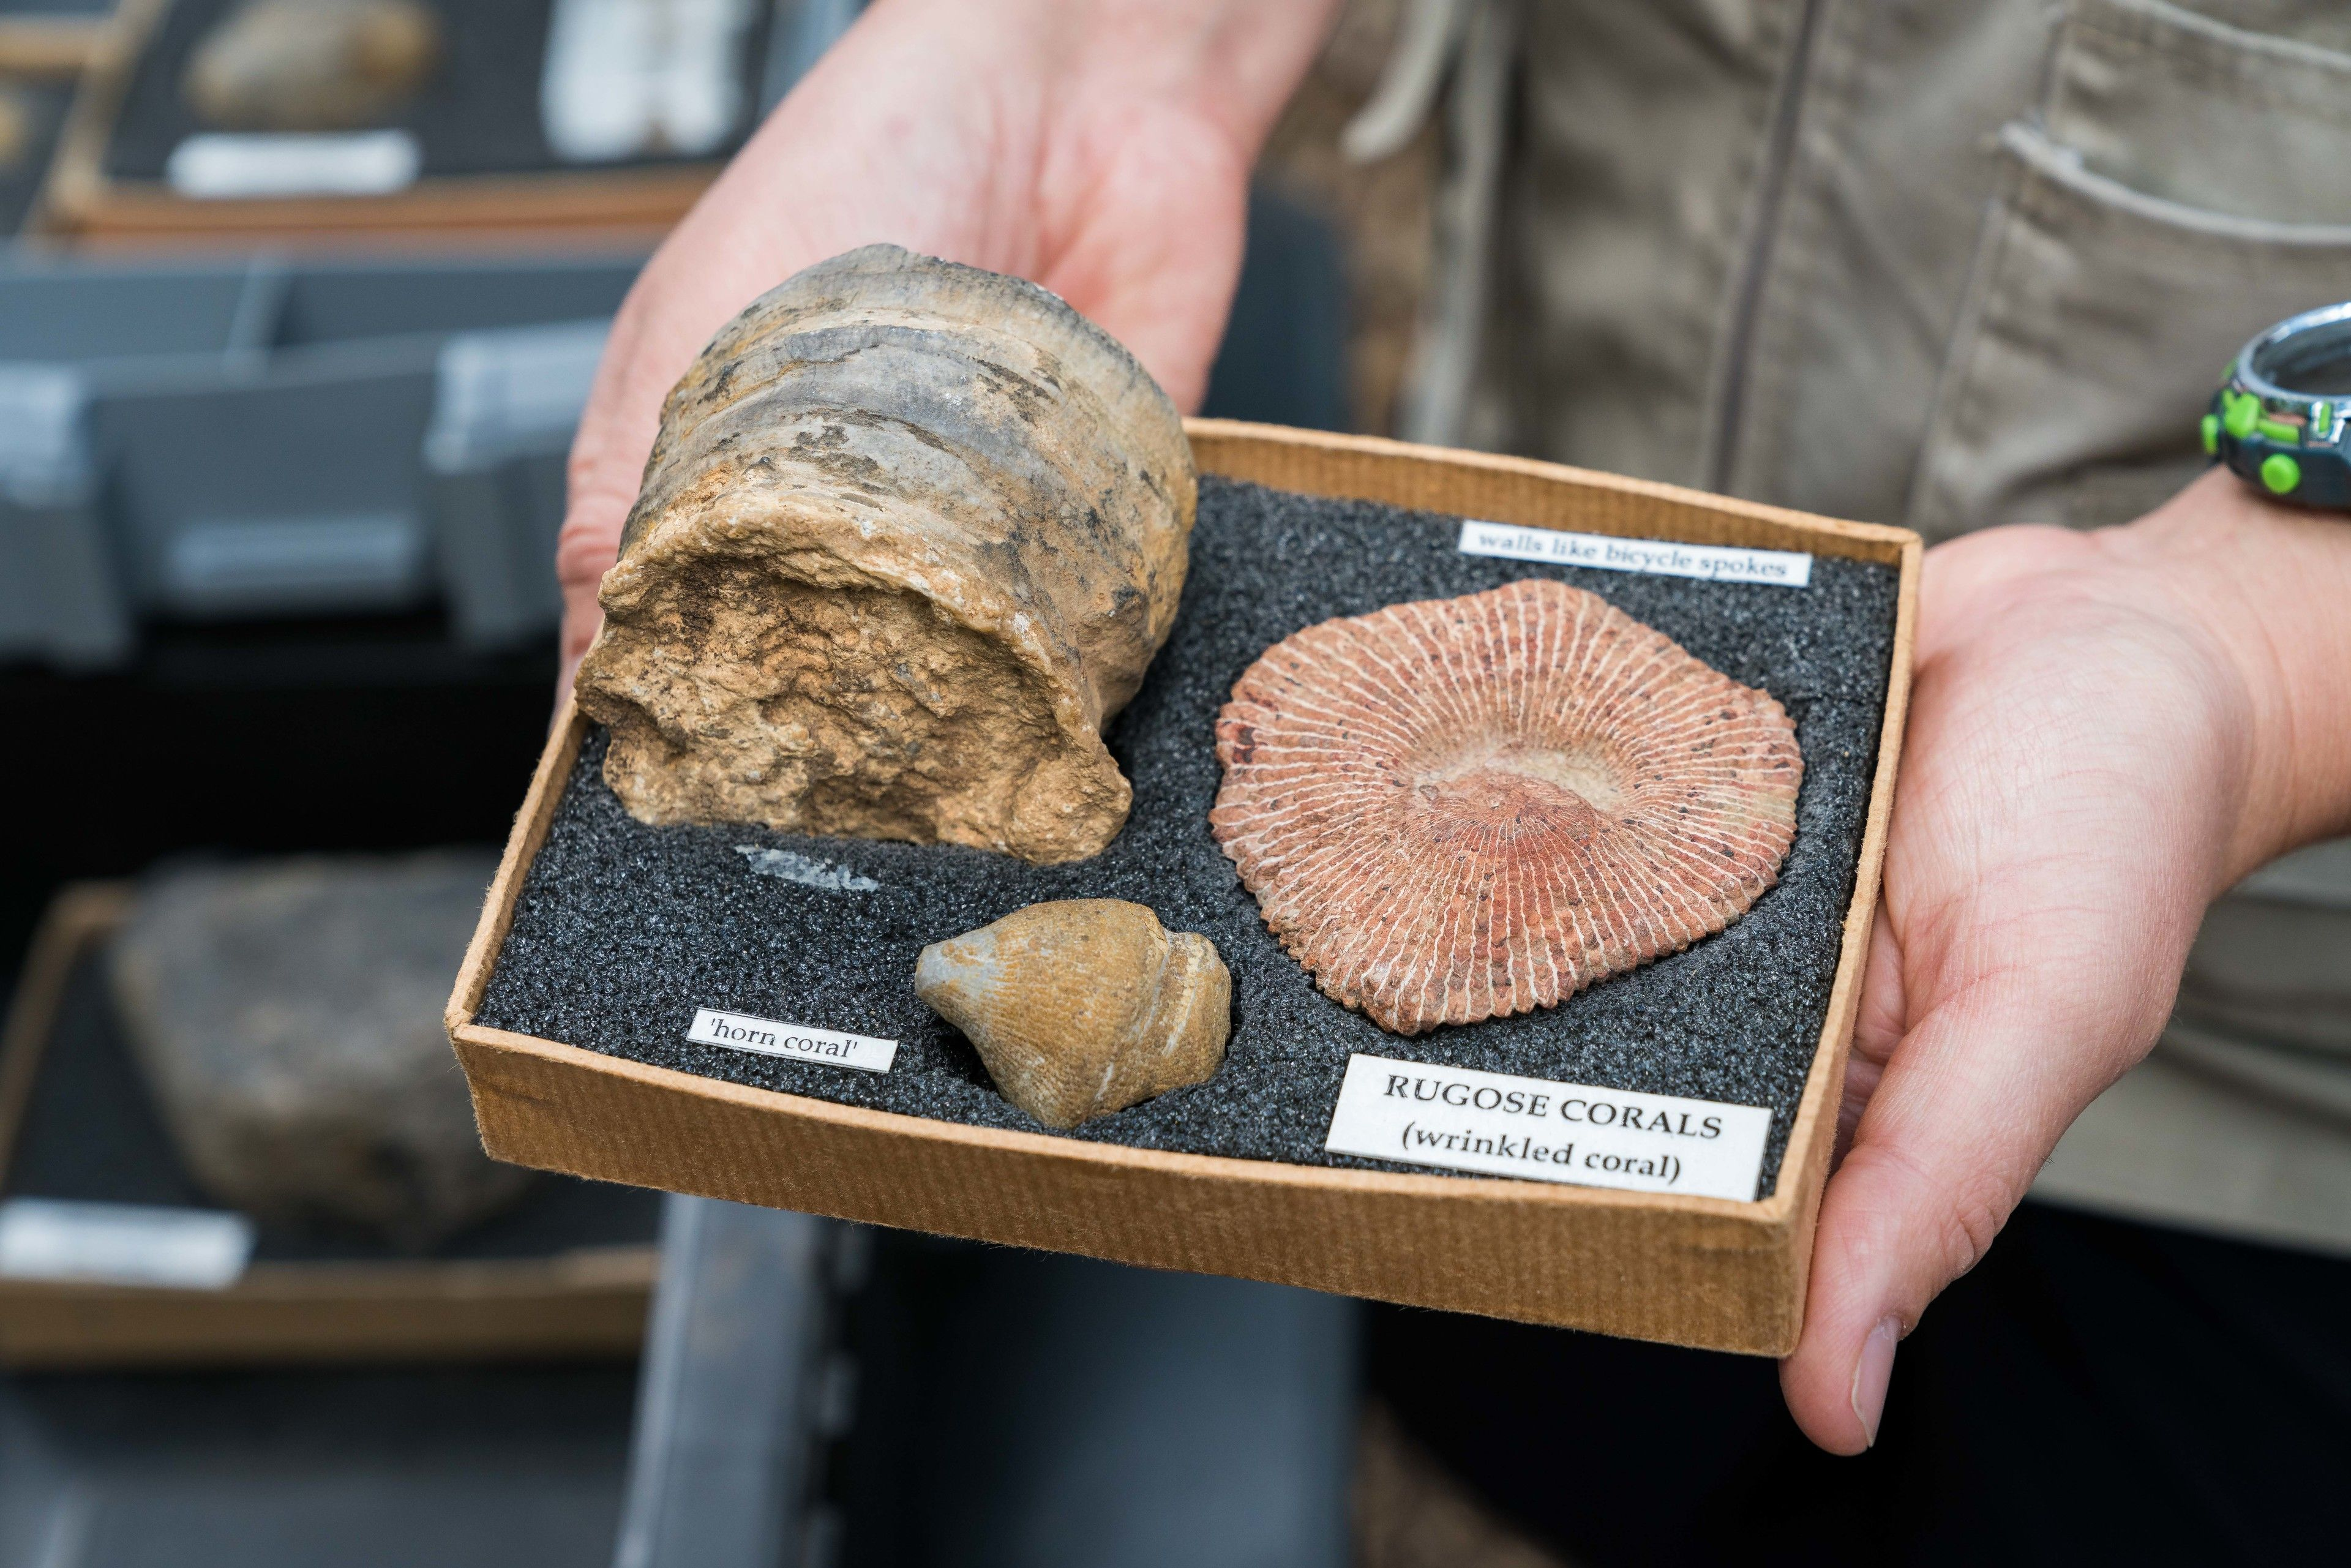 Guide holding fossilized coral in Australia